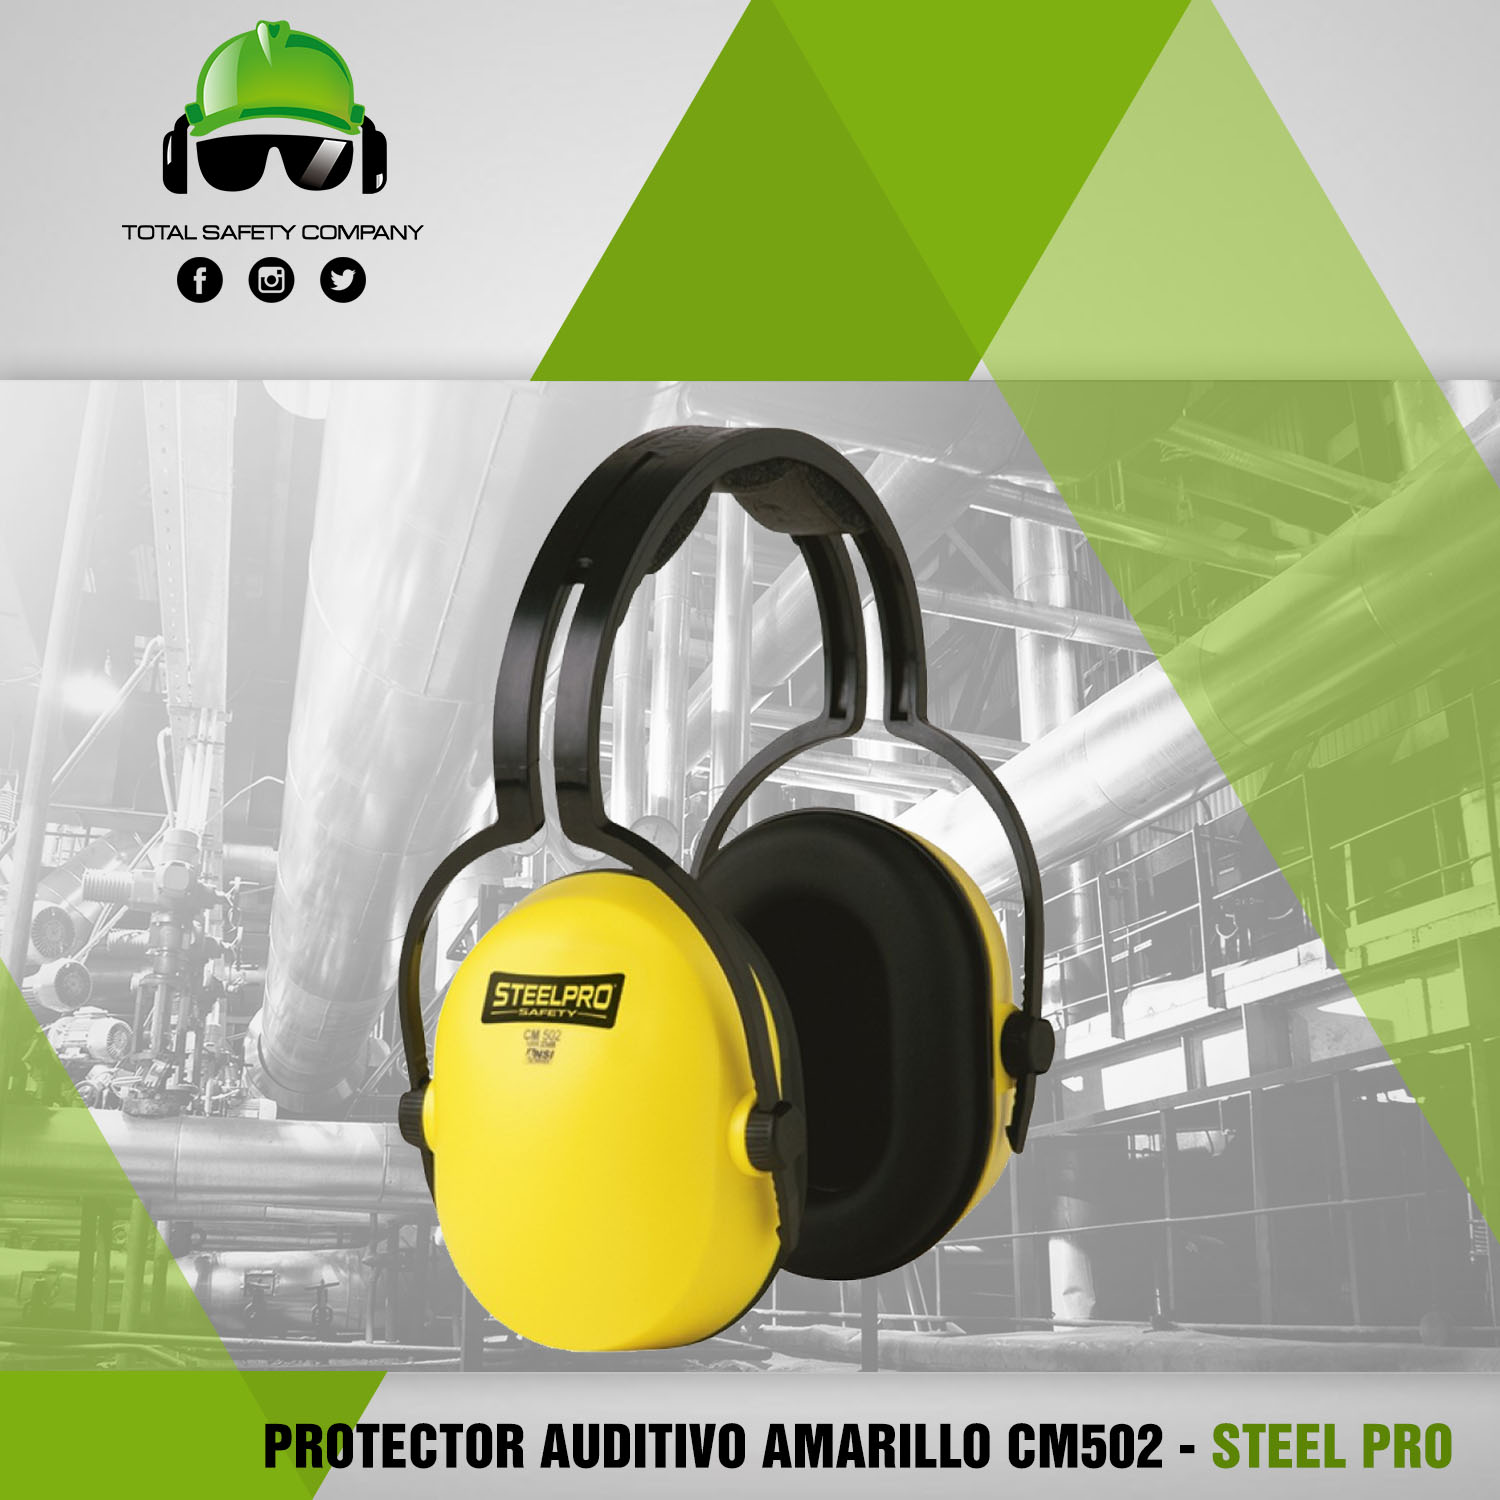 Protector auditivo amarillo CM502 - STEEL PRO